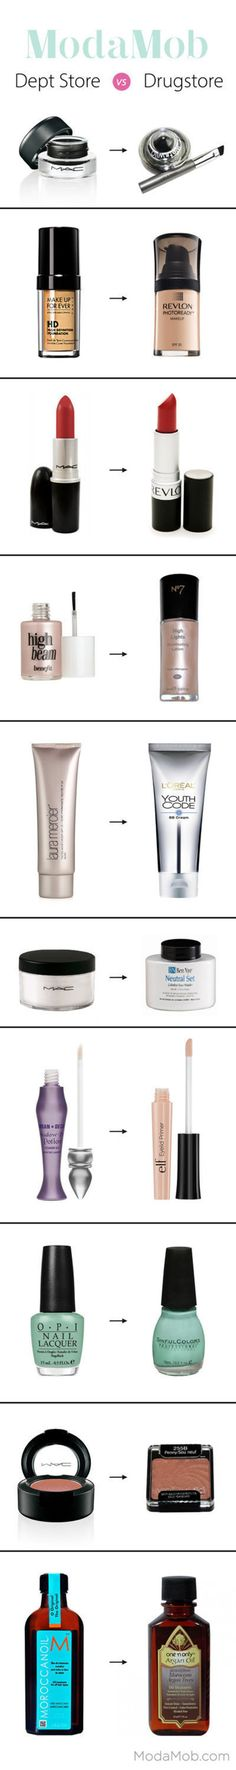 http://www.modamob.com/galleries/top-20-drugstore-vs-dept-store-finds/2006626  #duped #makeupdupes